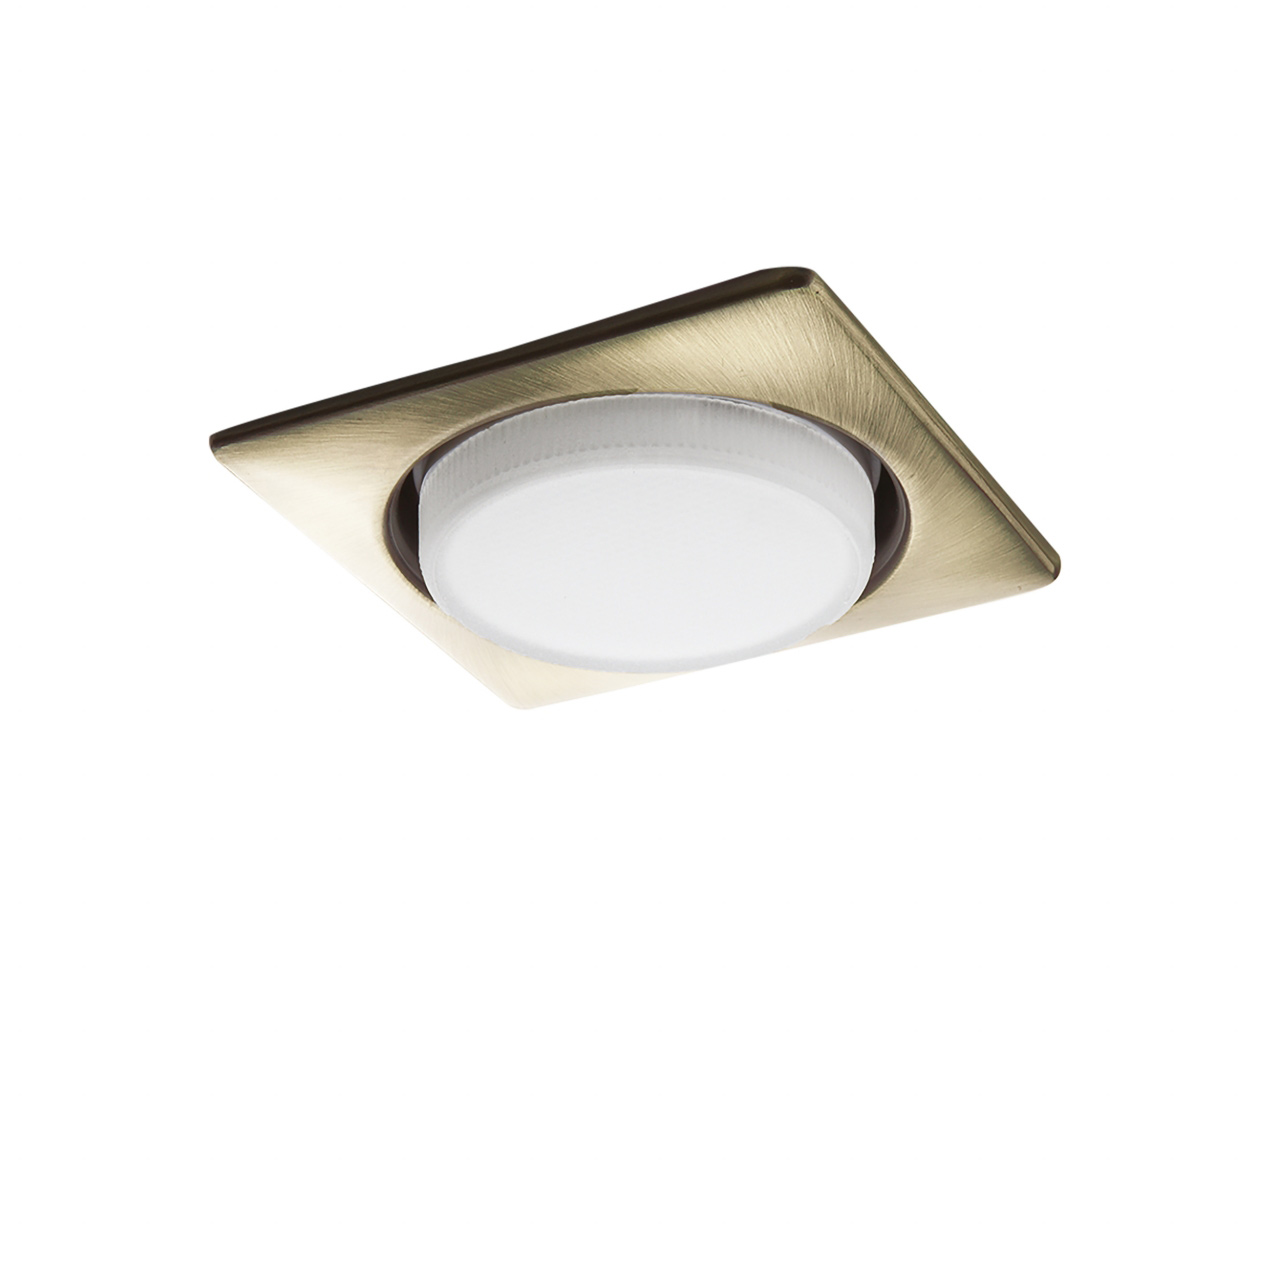 Светильник Tensio Q GX53 H4 220V square green bronze Lightstar 212121